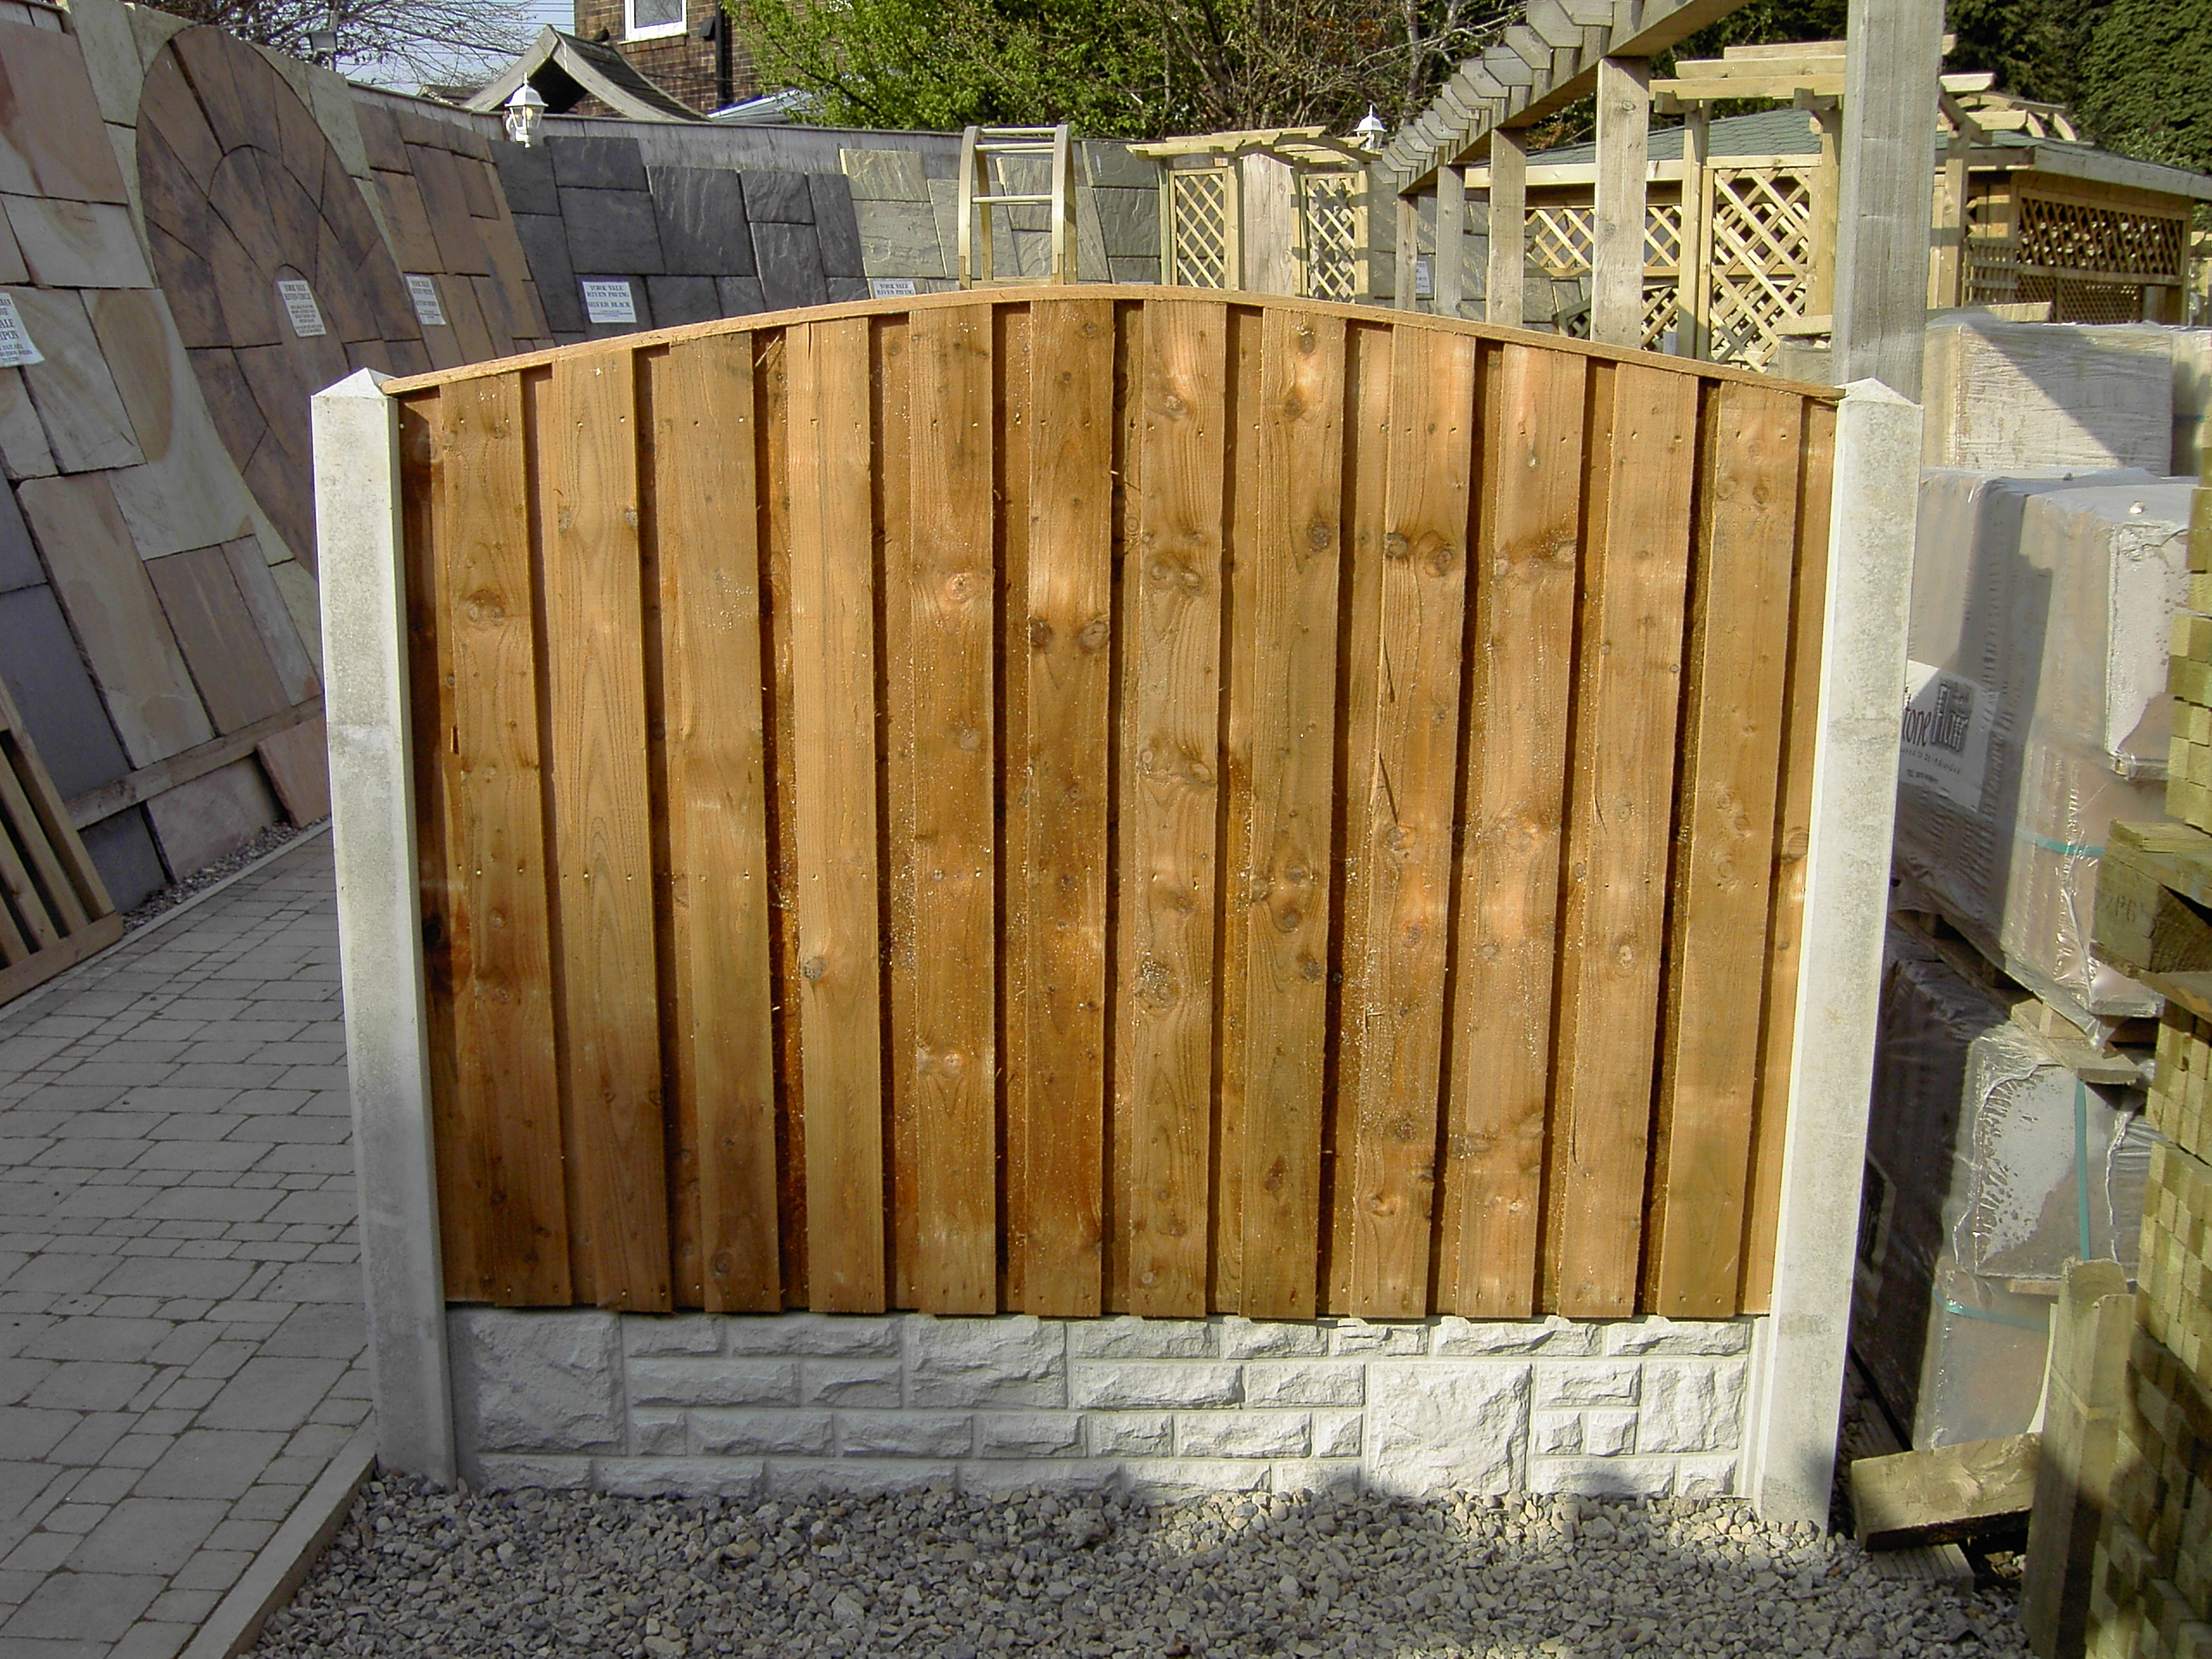 Rolawn Medallion Turf >> Home - Barkers FencingBarkers Fencing | – Landscaping and ...